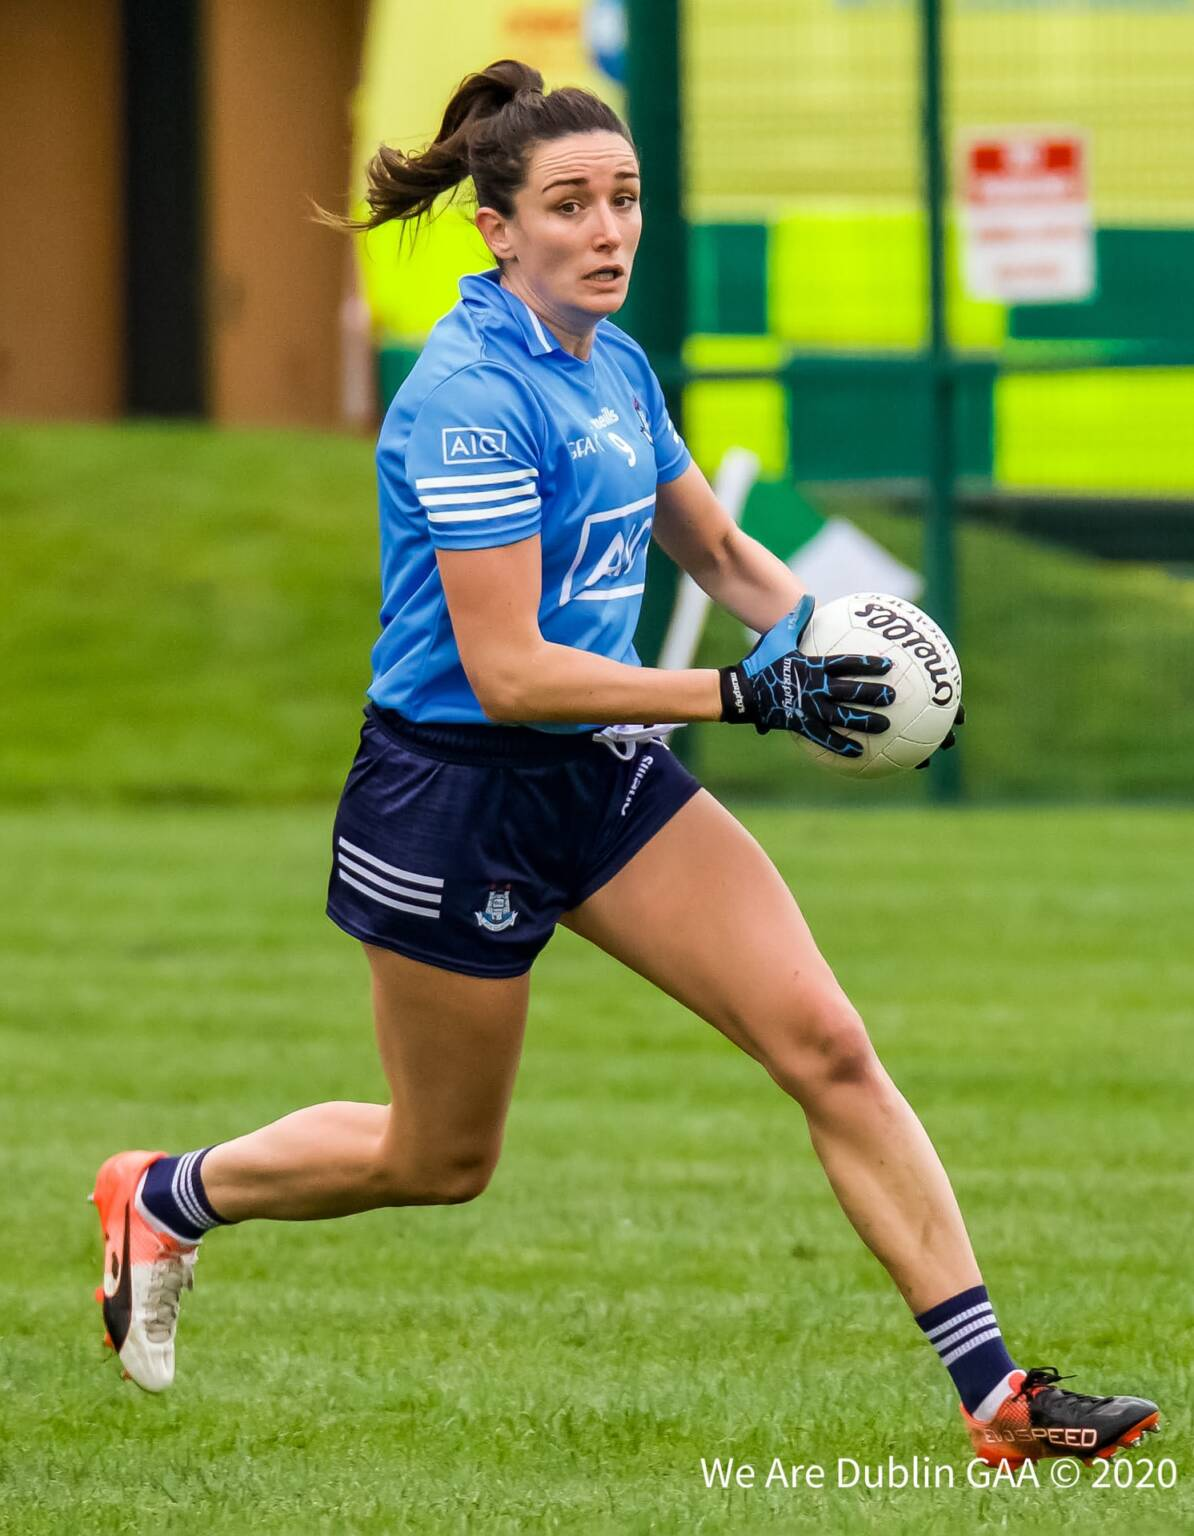 Niamh McEvoy in action against Waterford the St Sylvesters player is the one change to the starting Dublin team for the 2020 All Ireland Final